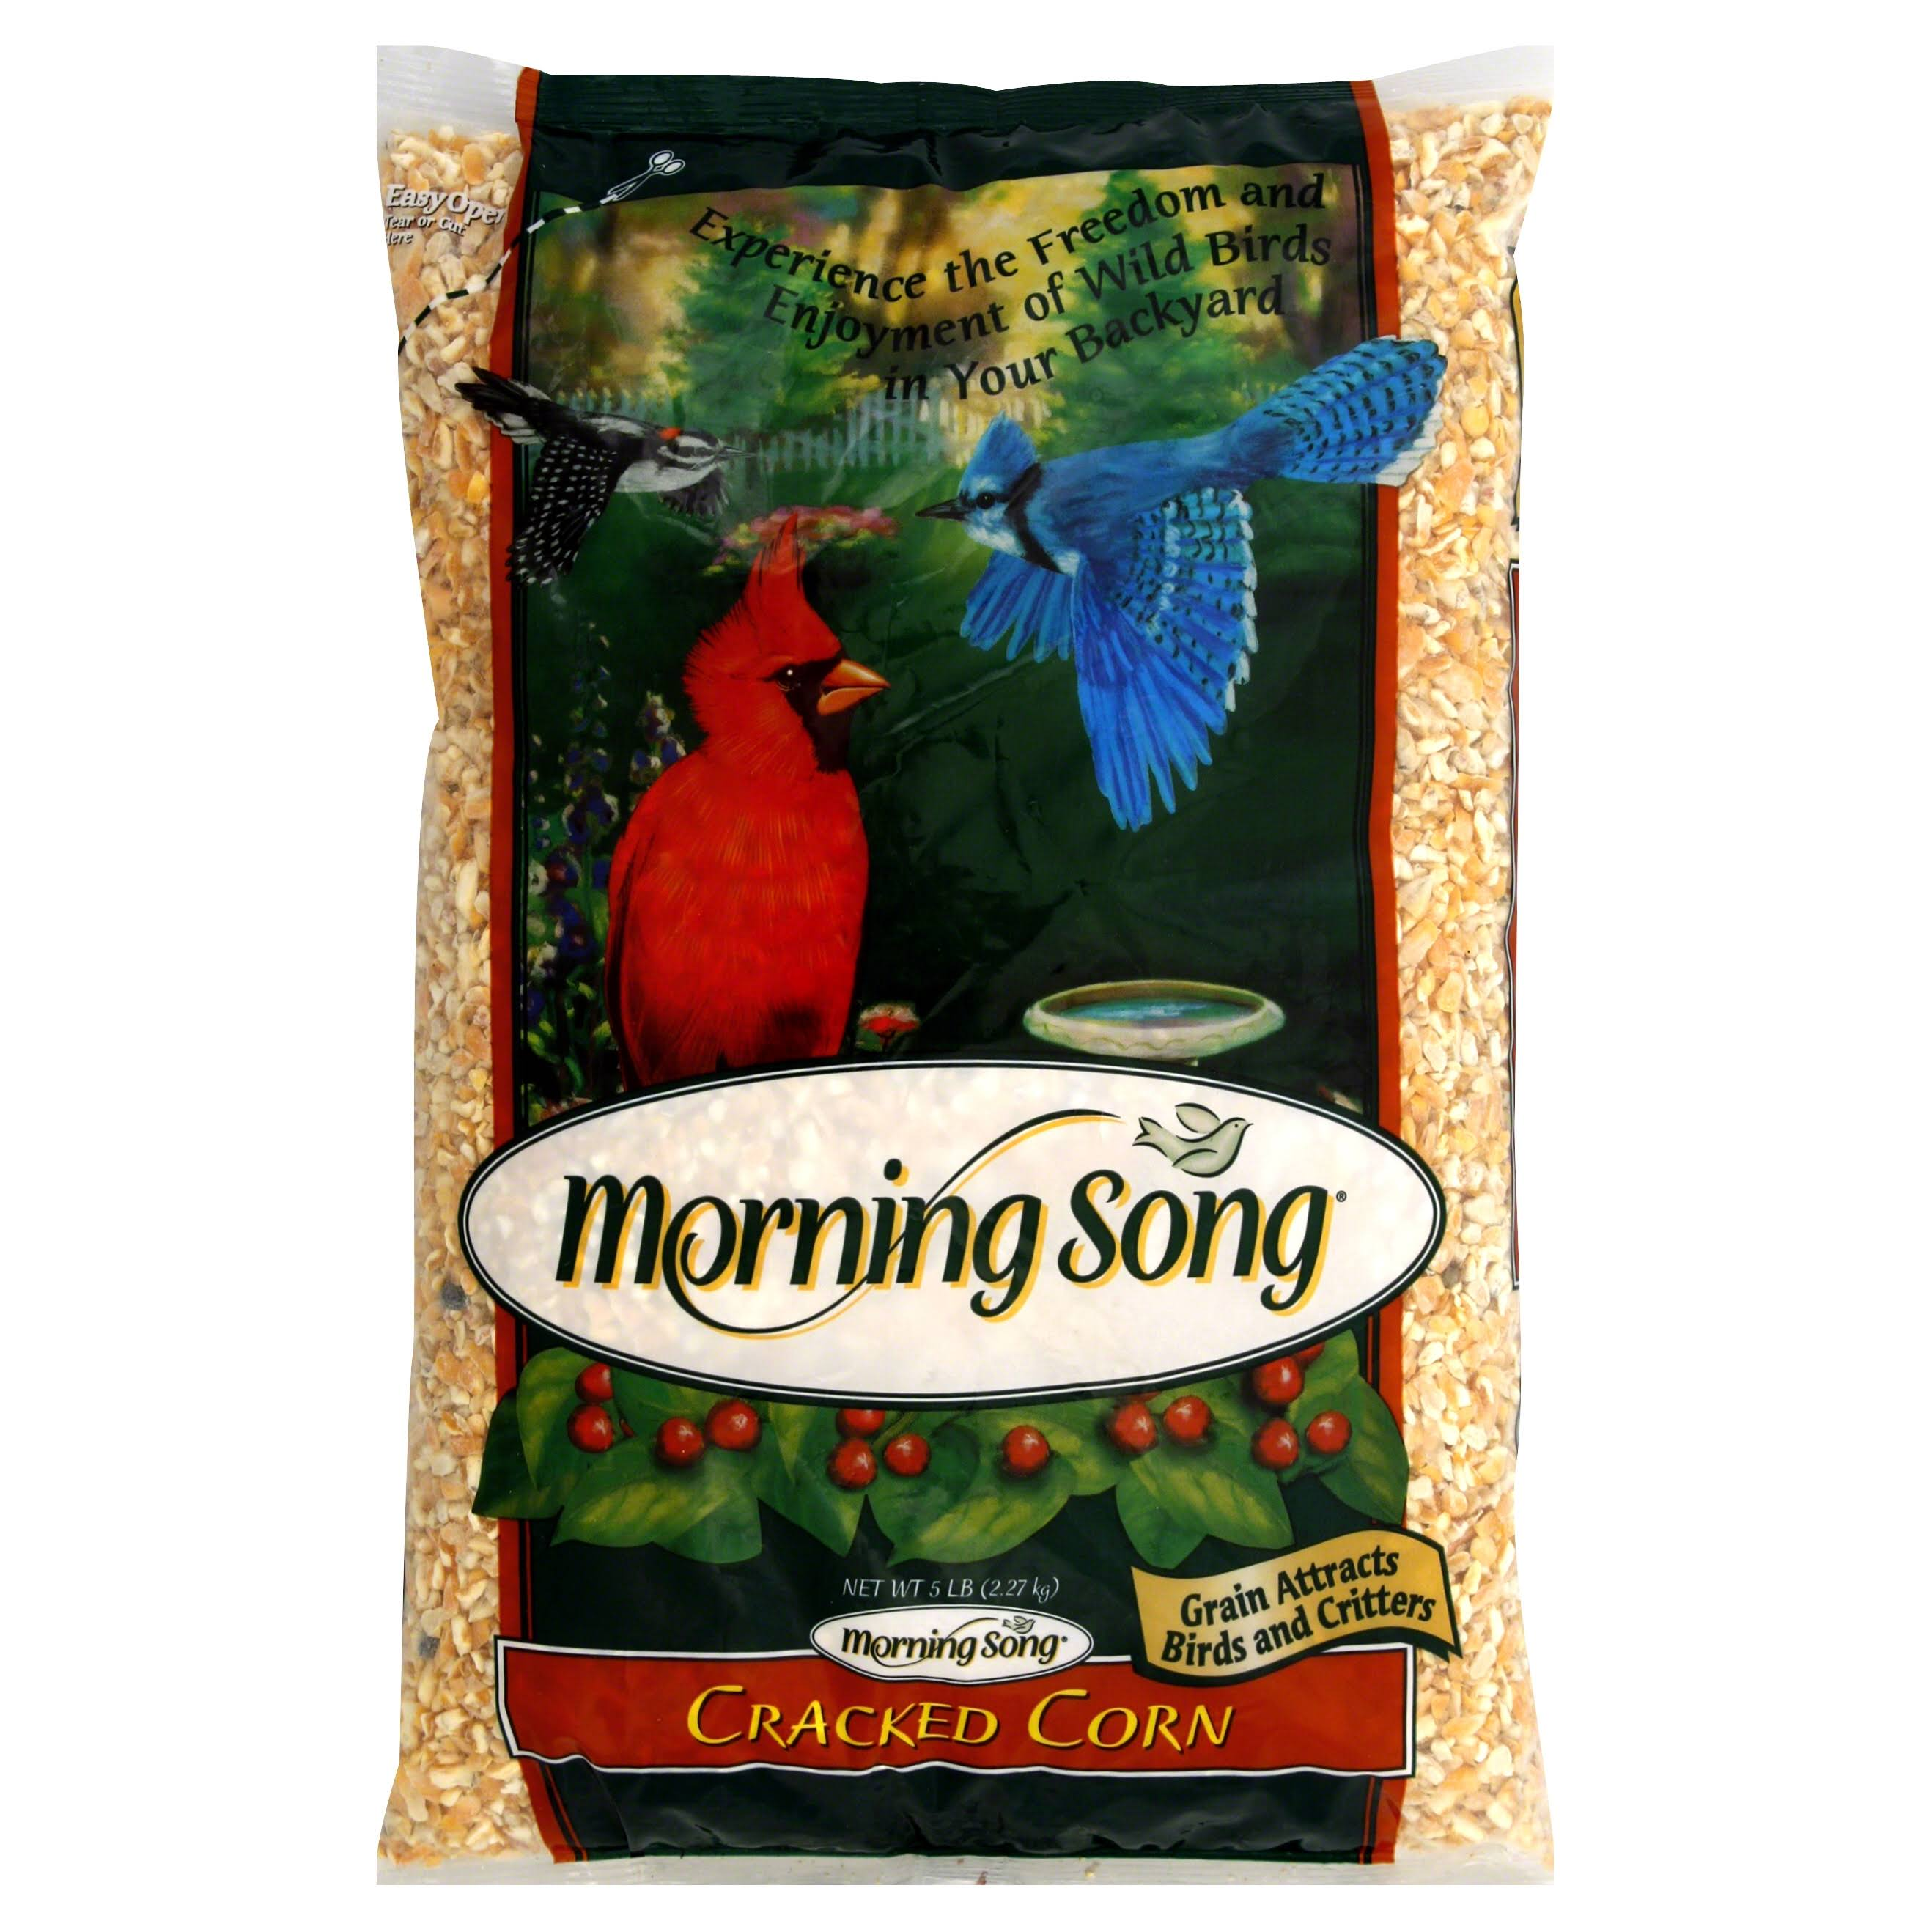 Morning Song Cracked Corn - 5 lb